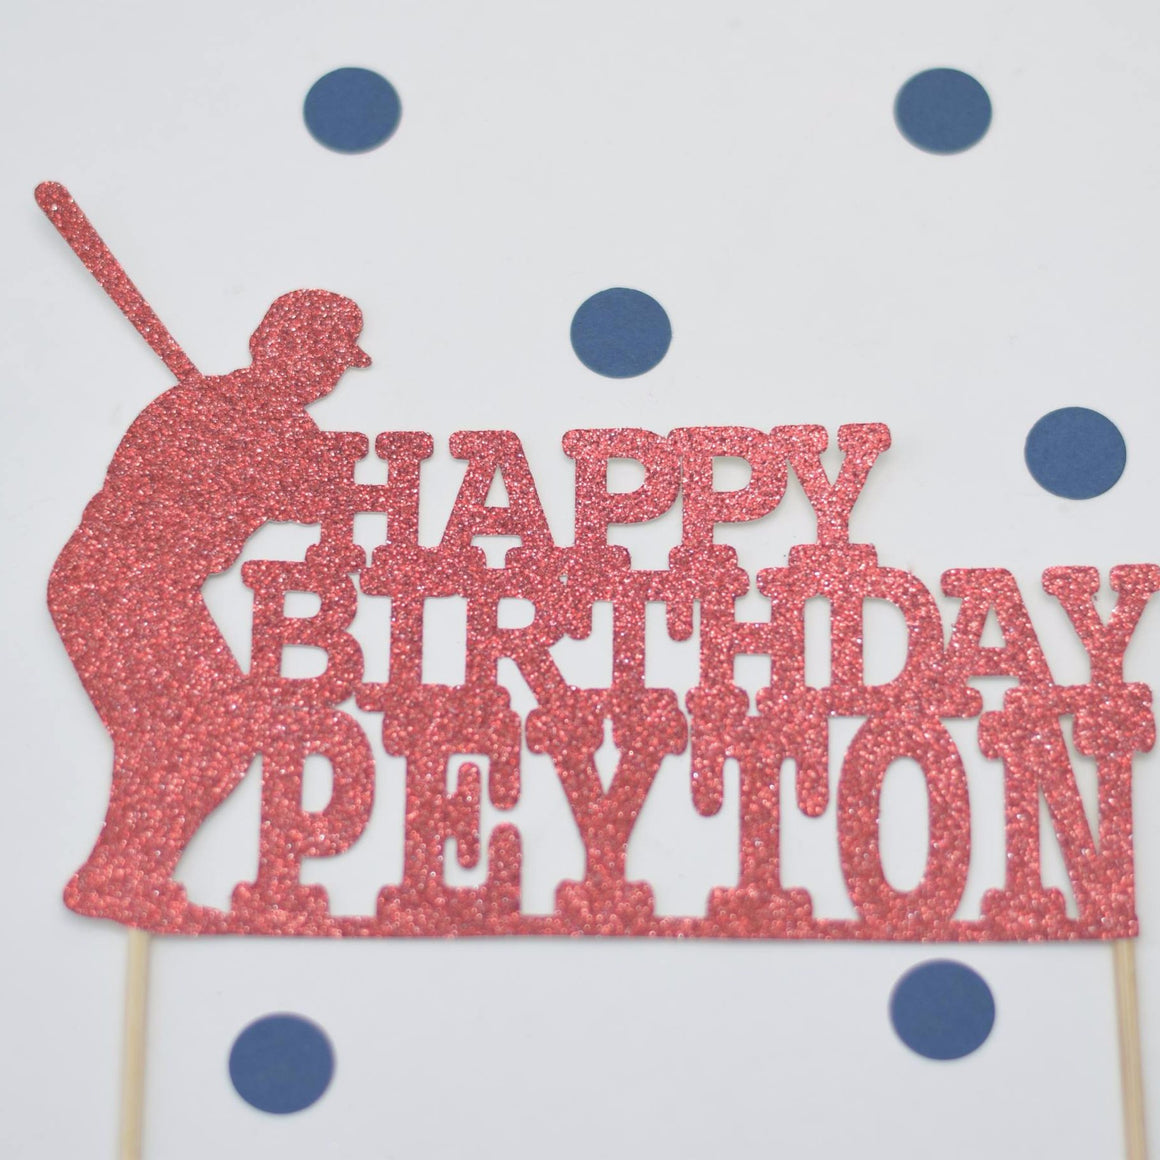 happy birthday peyton red glitter baseball cake topper